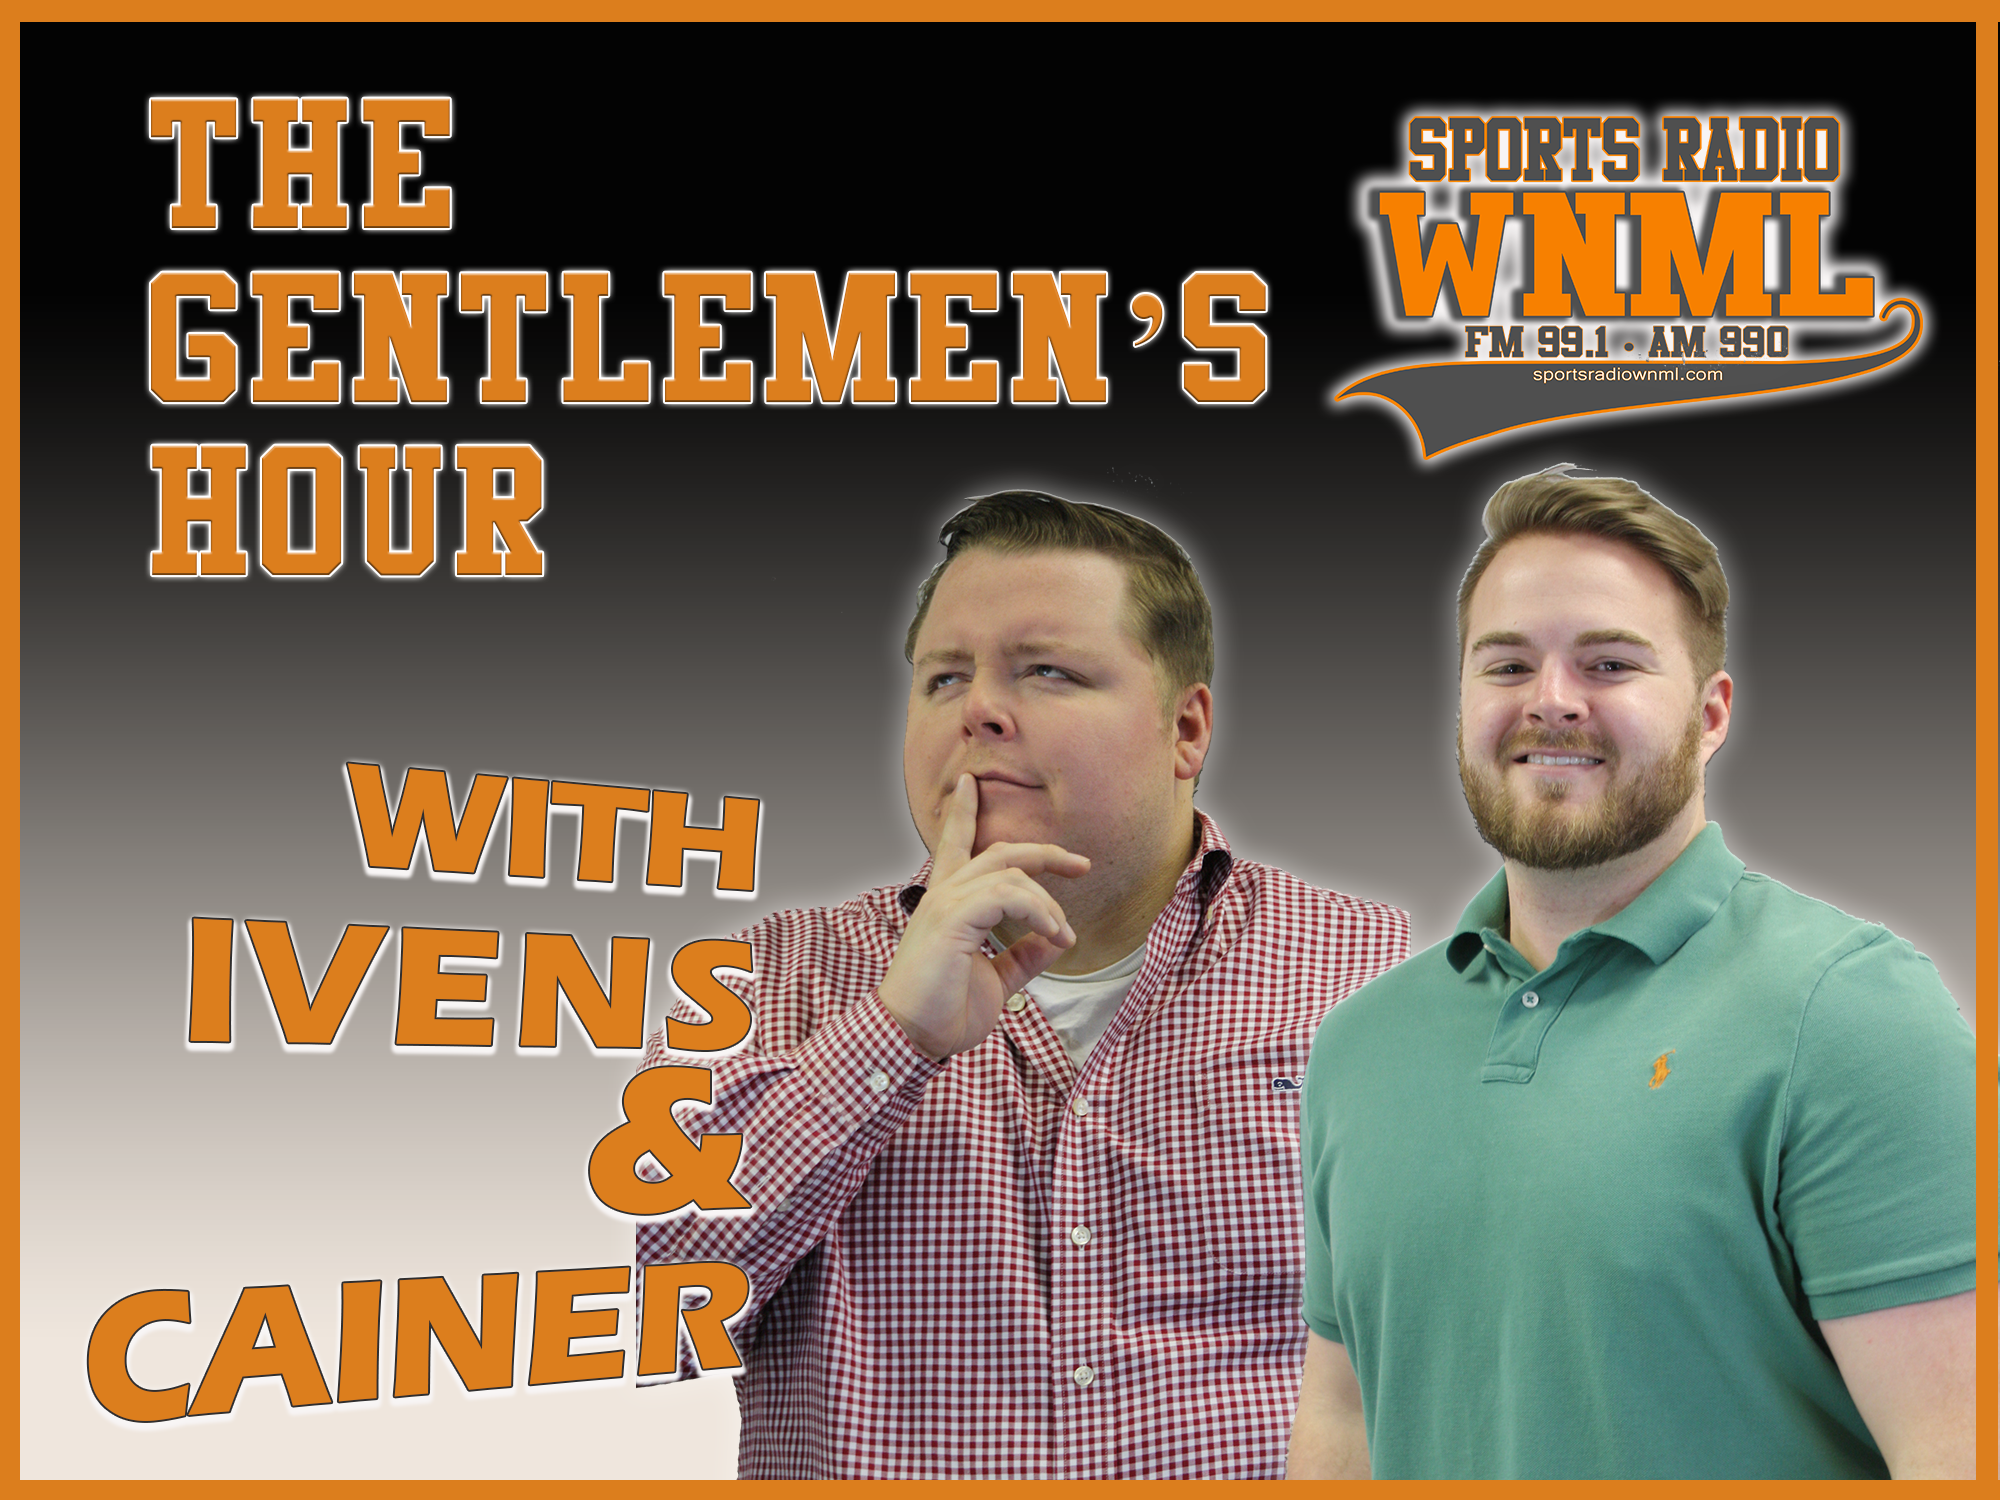 The Gentlemen's Hour Podcast: Episode 23 (3.20.19)